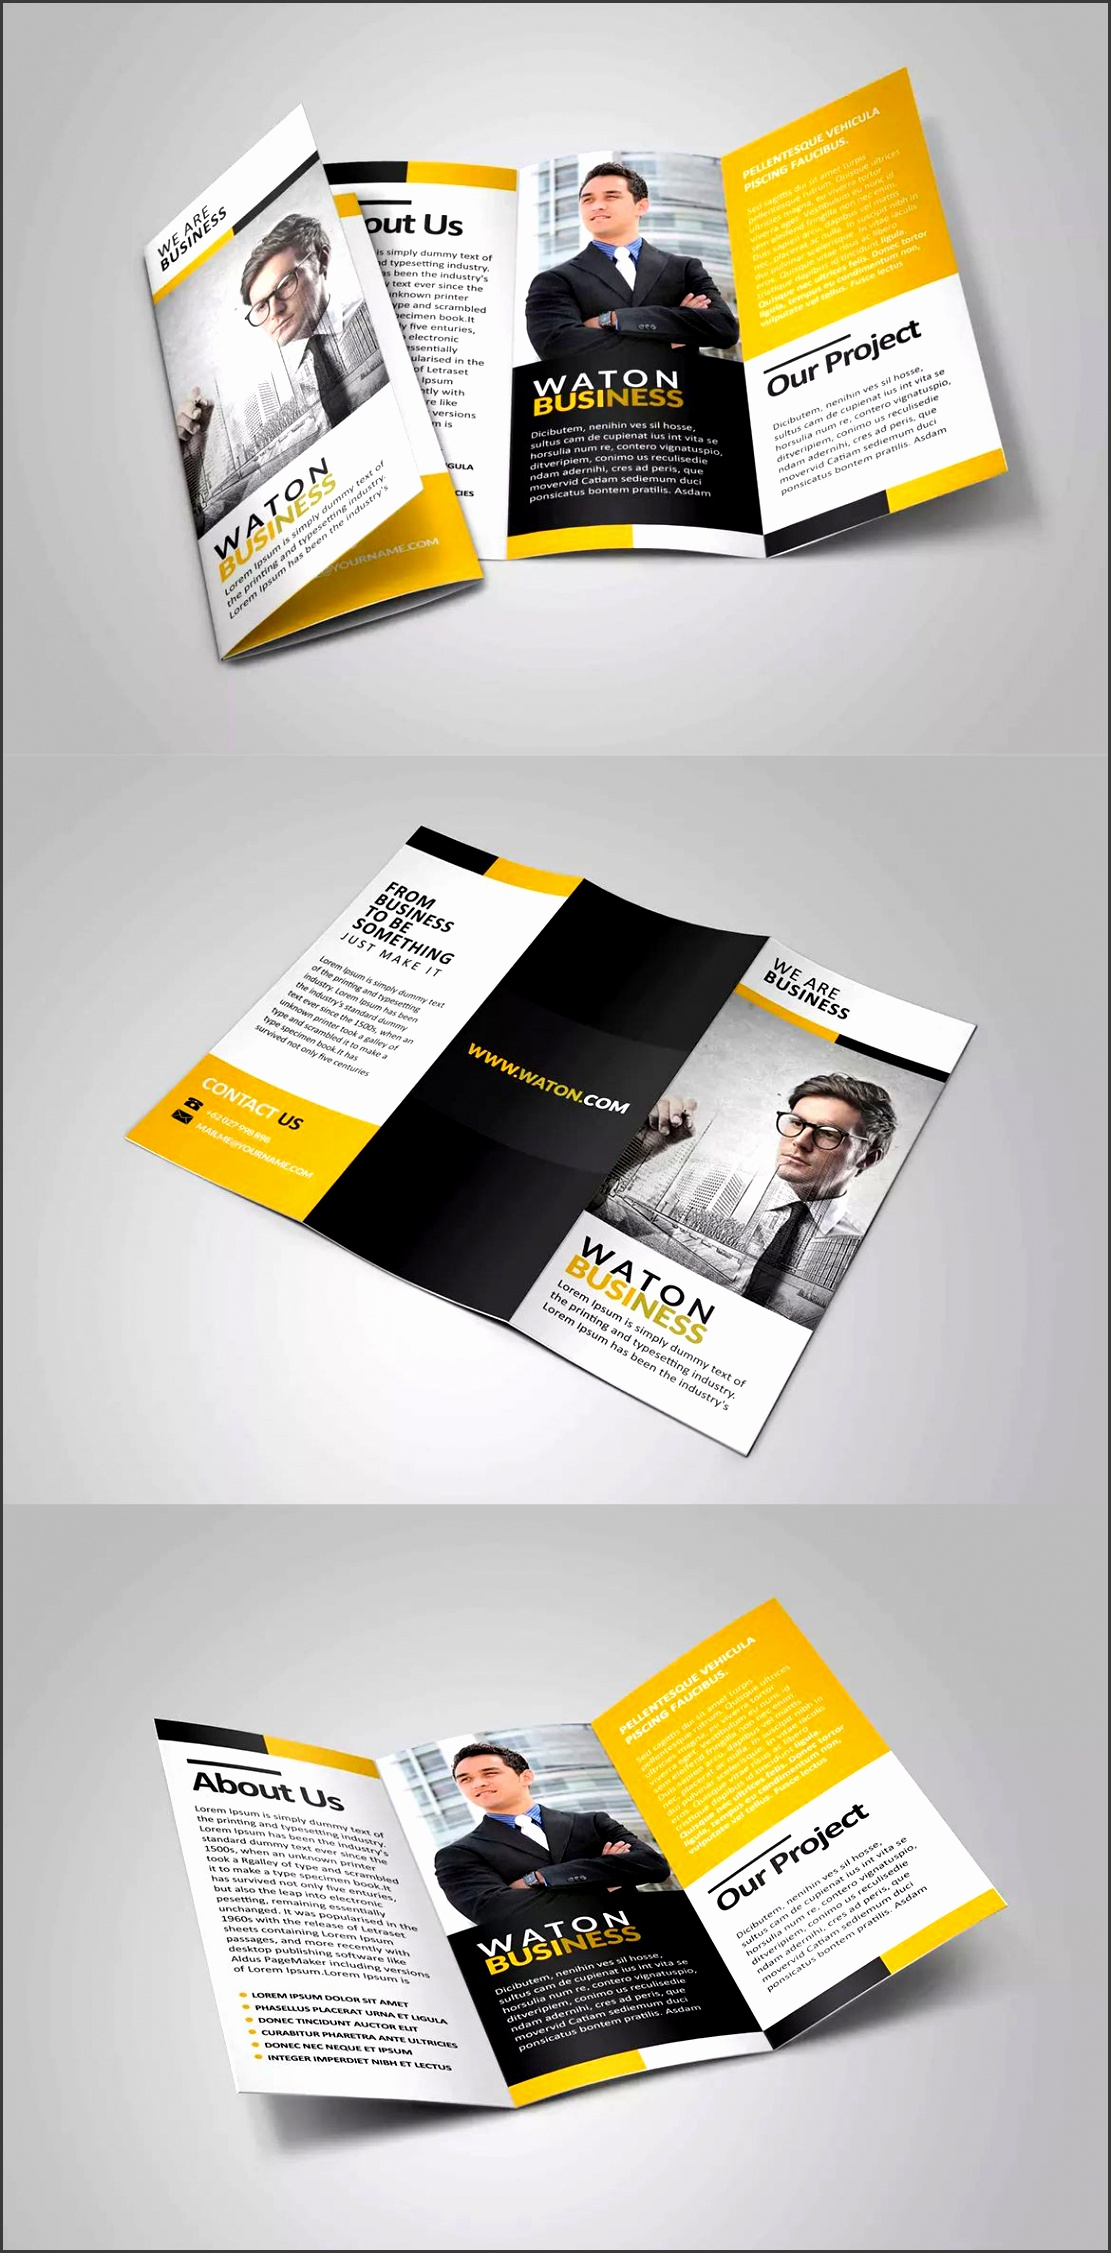 Waton Business Trifold Brochure Template PSD